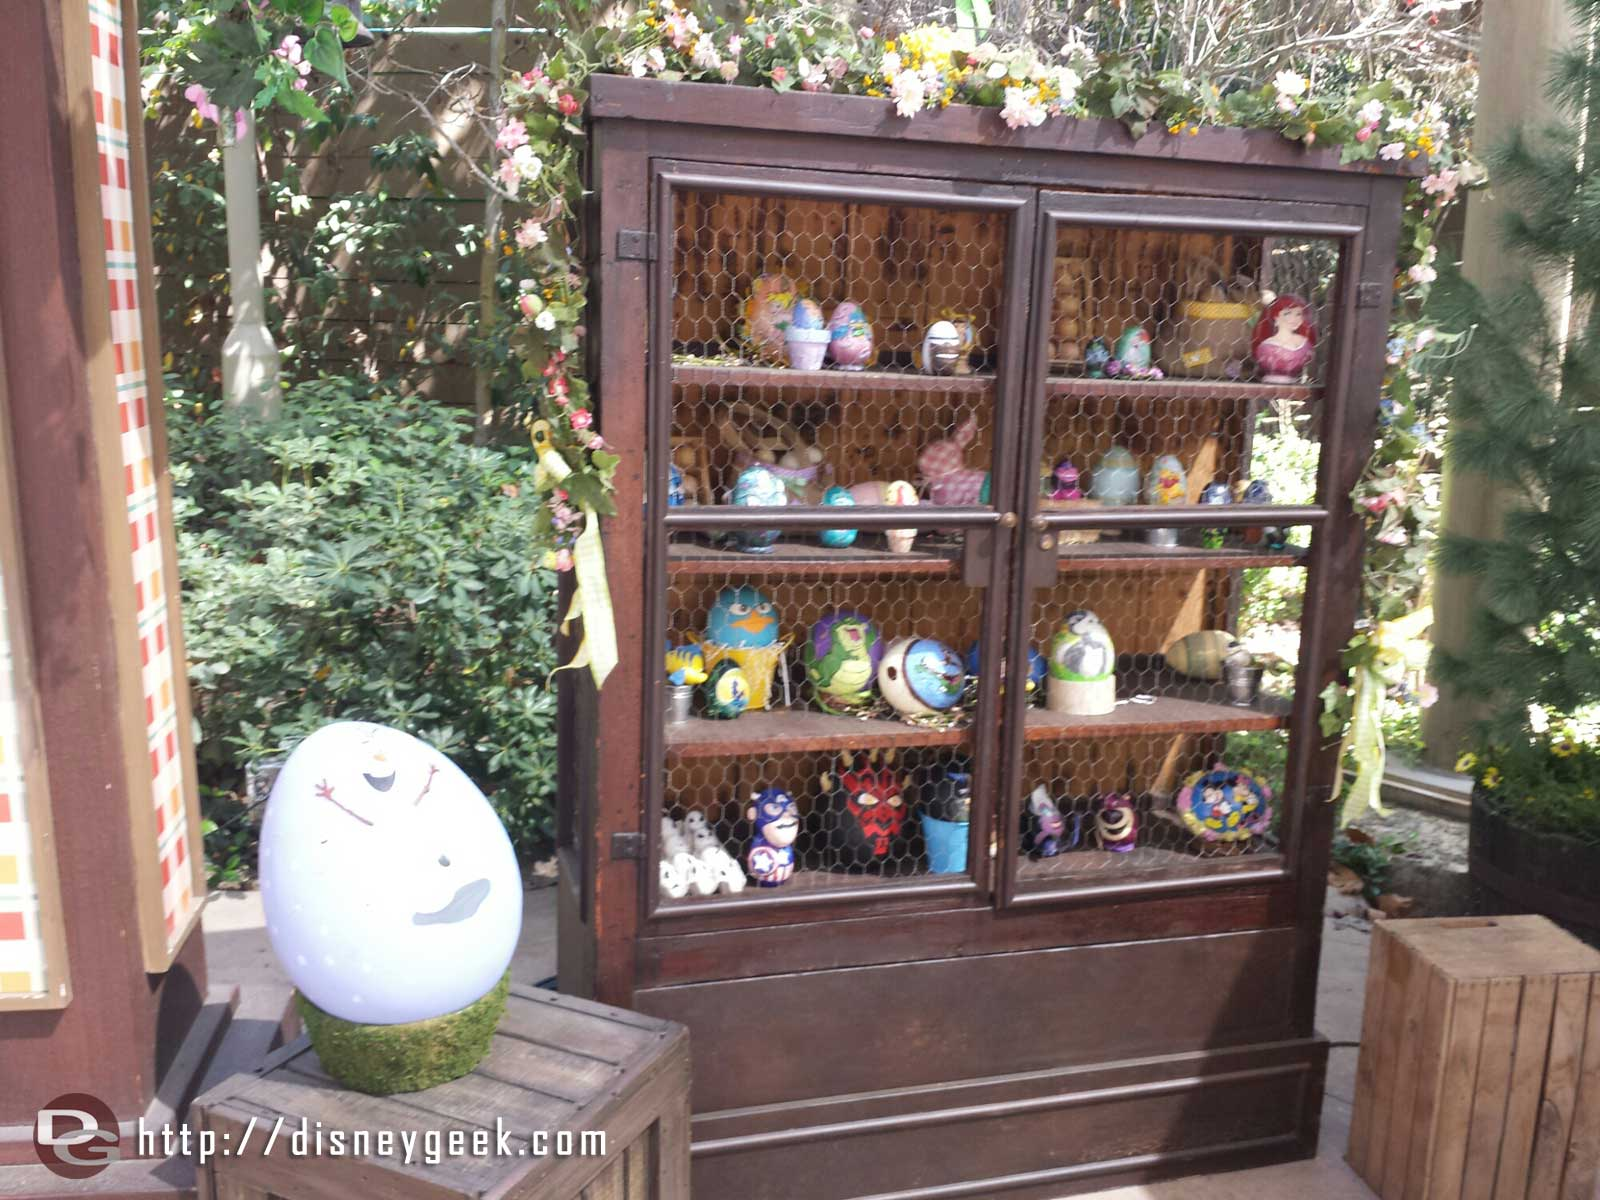 Disneyland Springtime Roundup - Eggs on Display